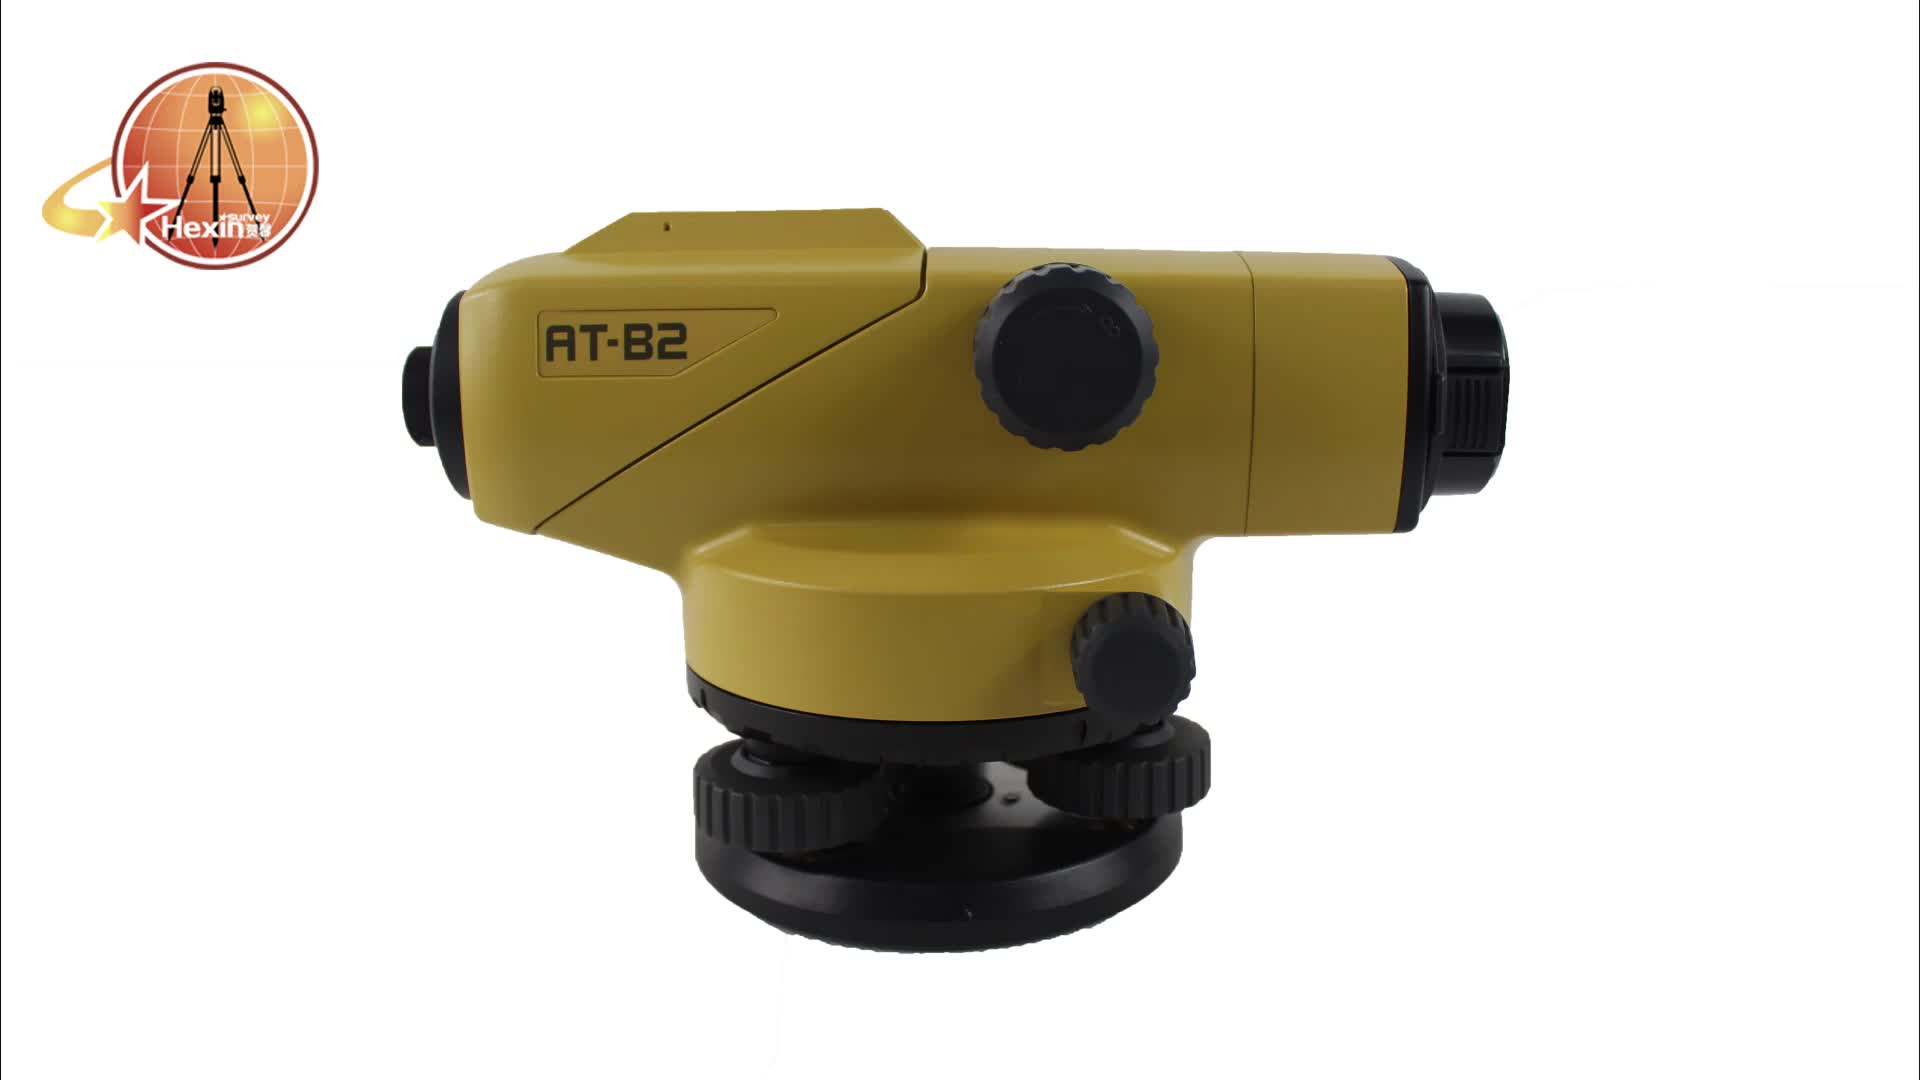 32x Topcon AT - B2 auto level Topcon automatic with ultra-Short 20cm (7.9 in.) Focusing